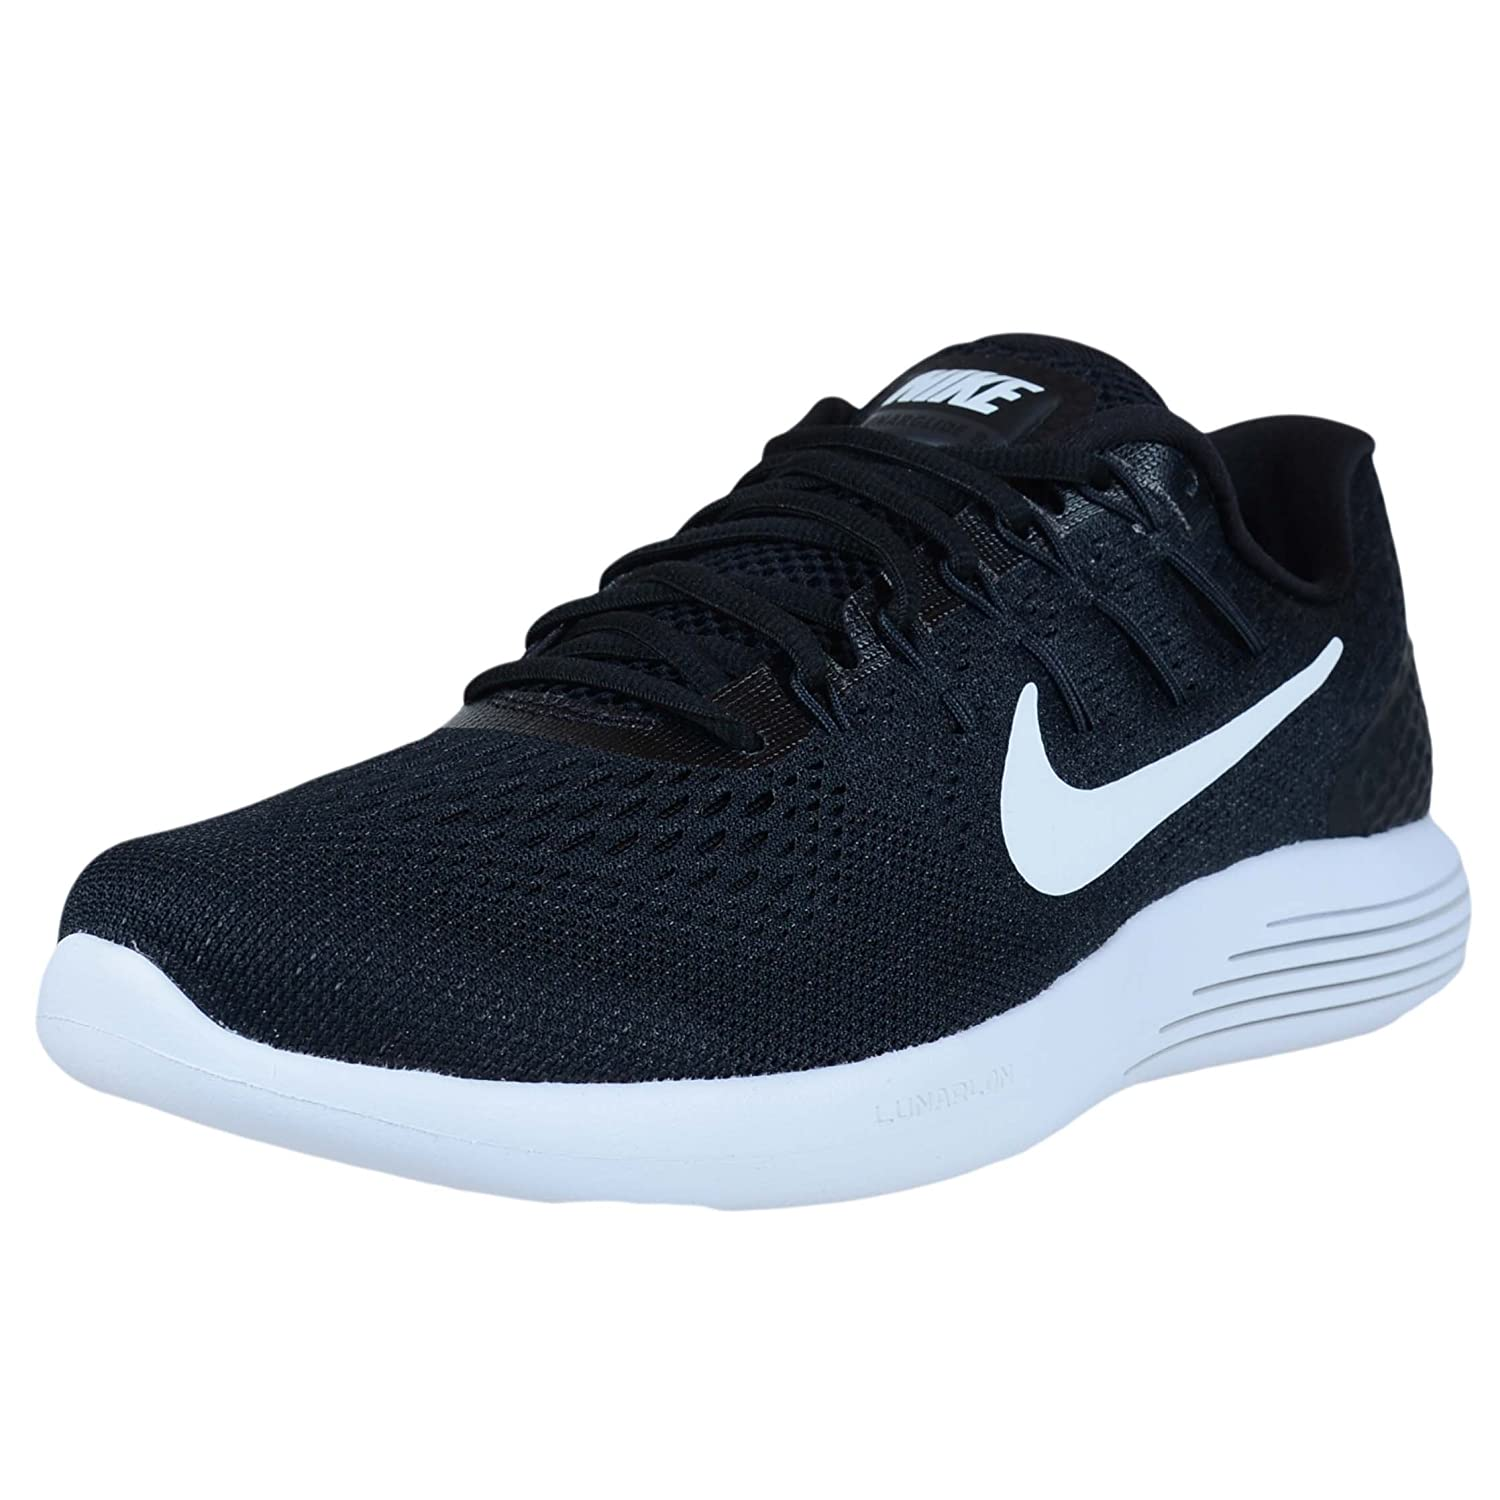 NIKE Women's Lunarglide 9 Running Shoe B07683GWDS 8 B(M) US|Black/White/Anthracite